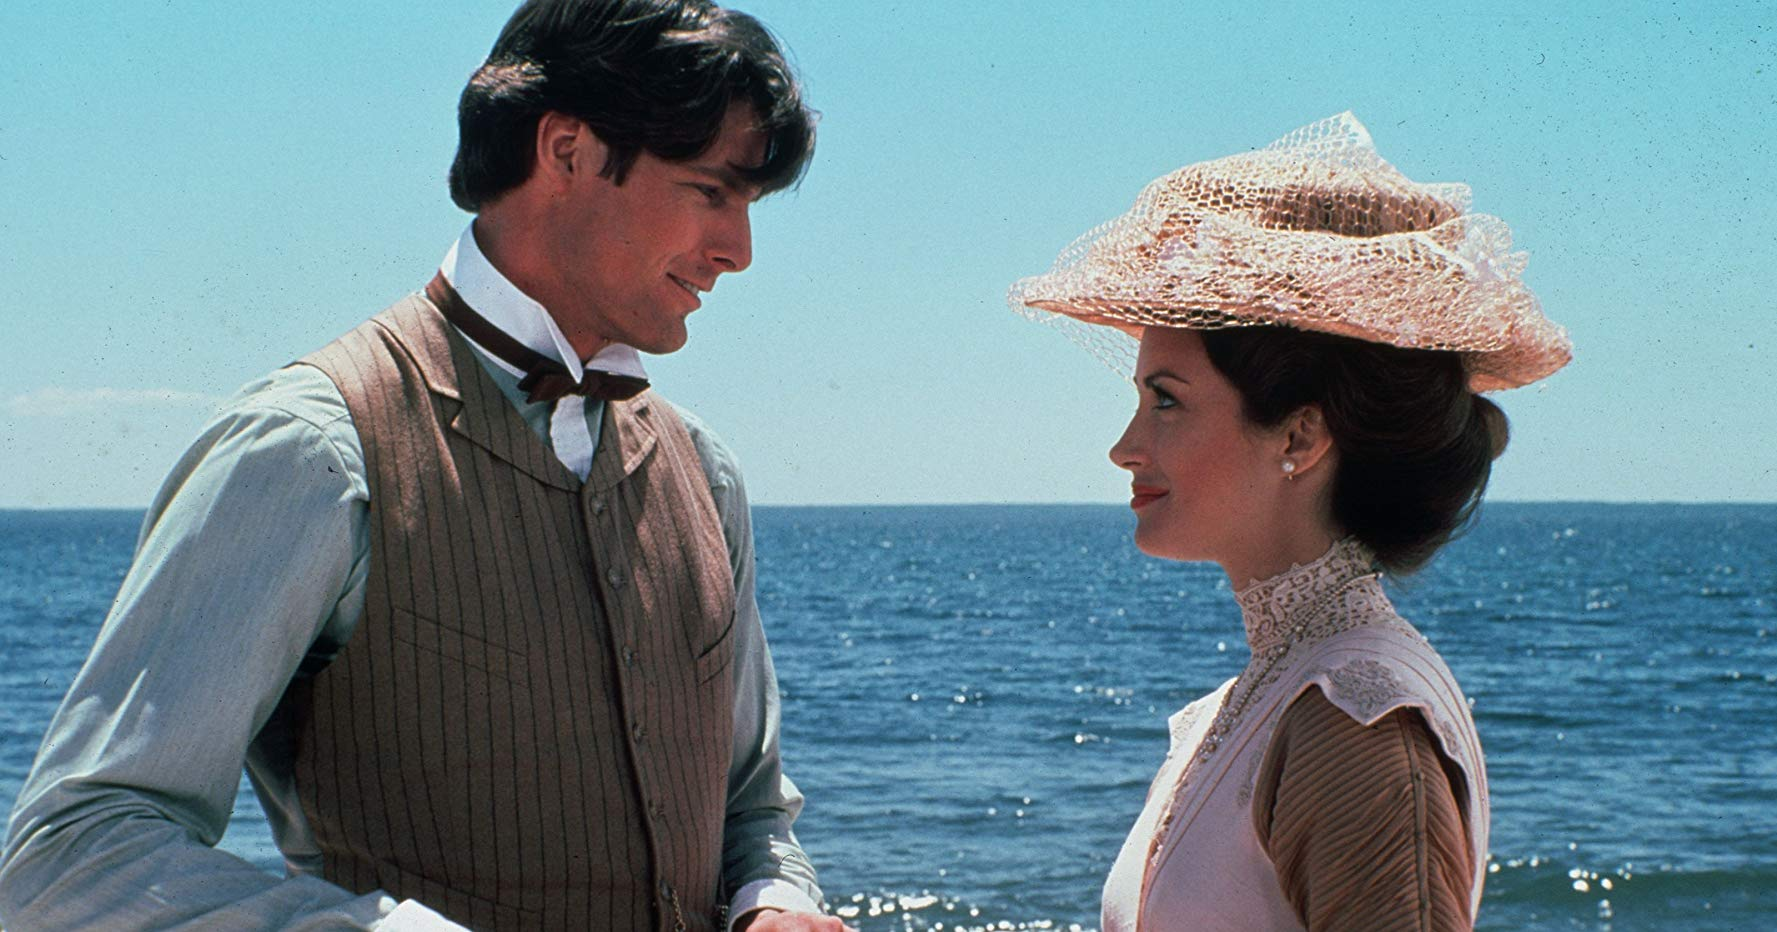 Modern playwright Richard Collier (Christopher Reeve) travels back in time to romance Elise McKenna (Jane Seymour) in Somewhere in Time (1980)